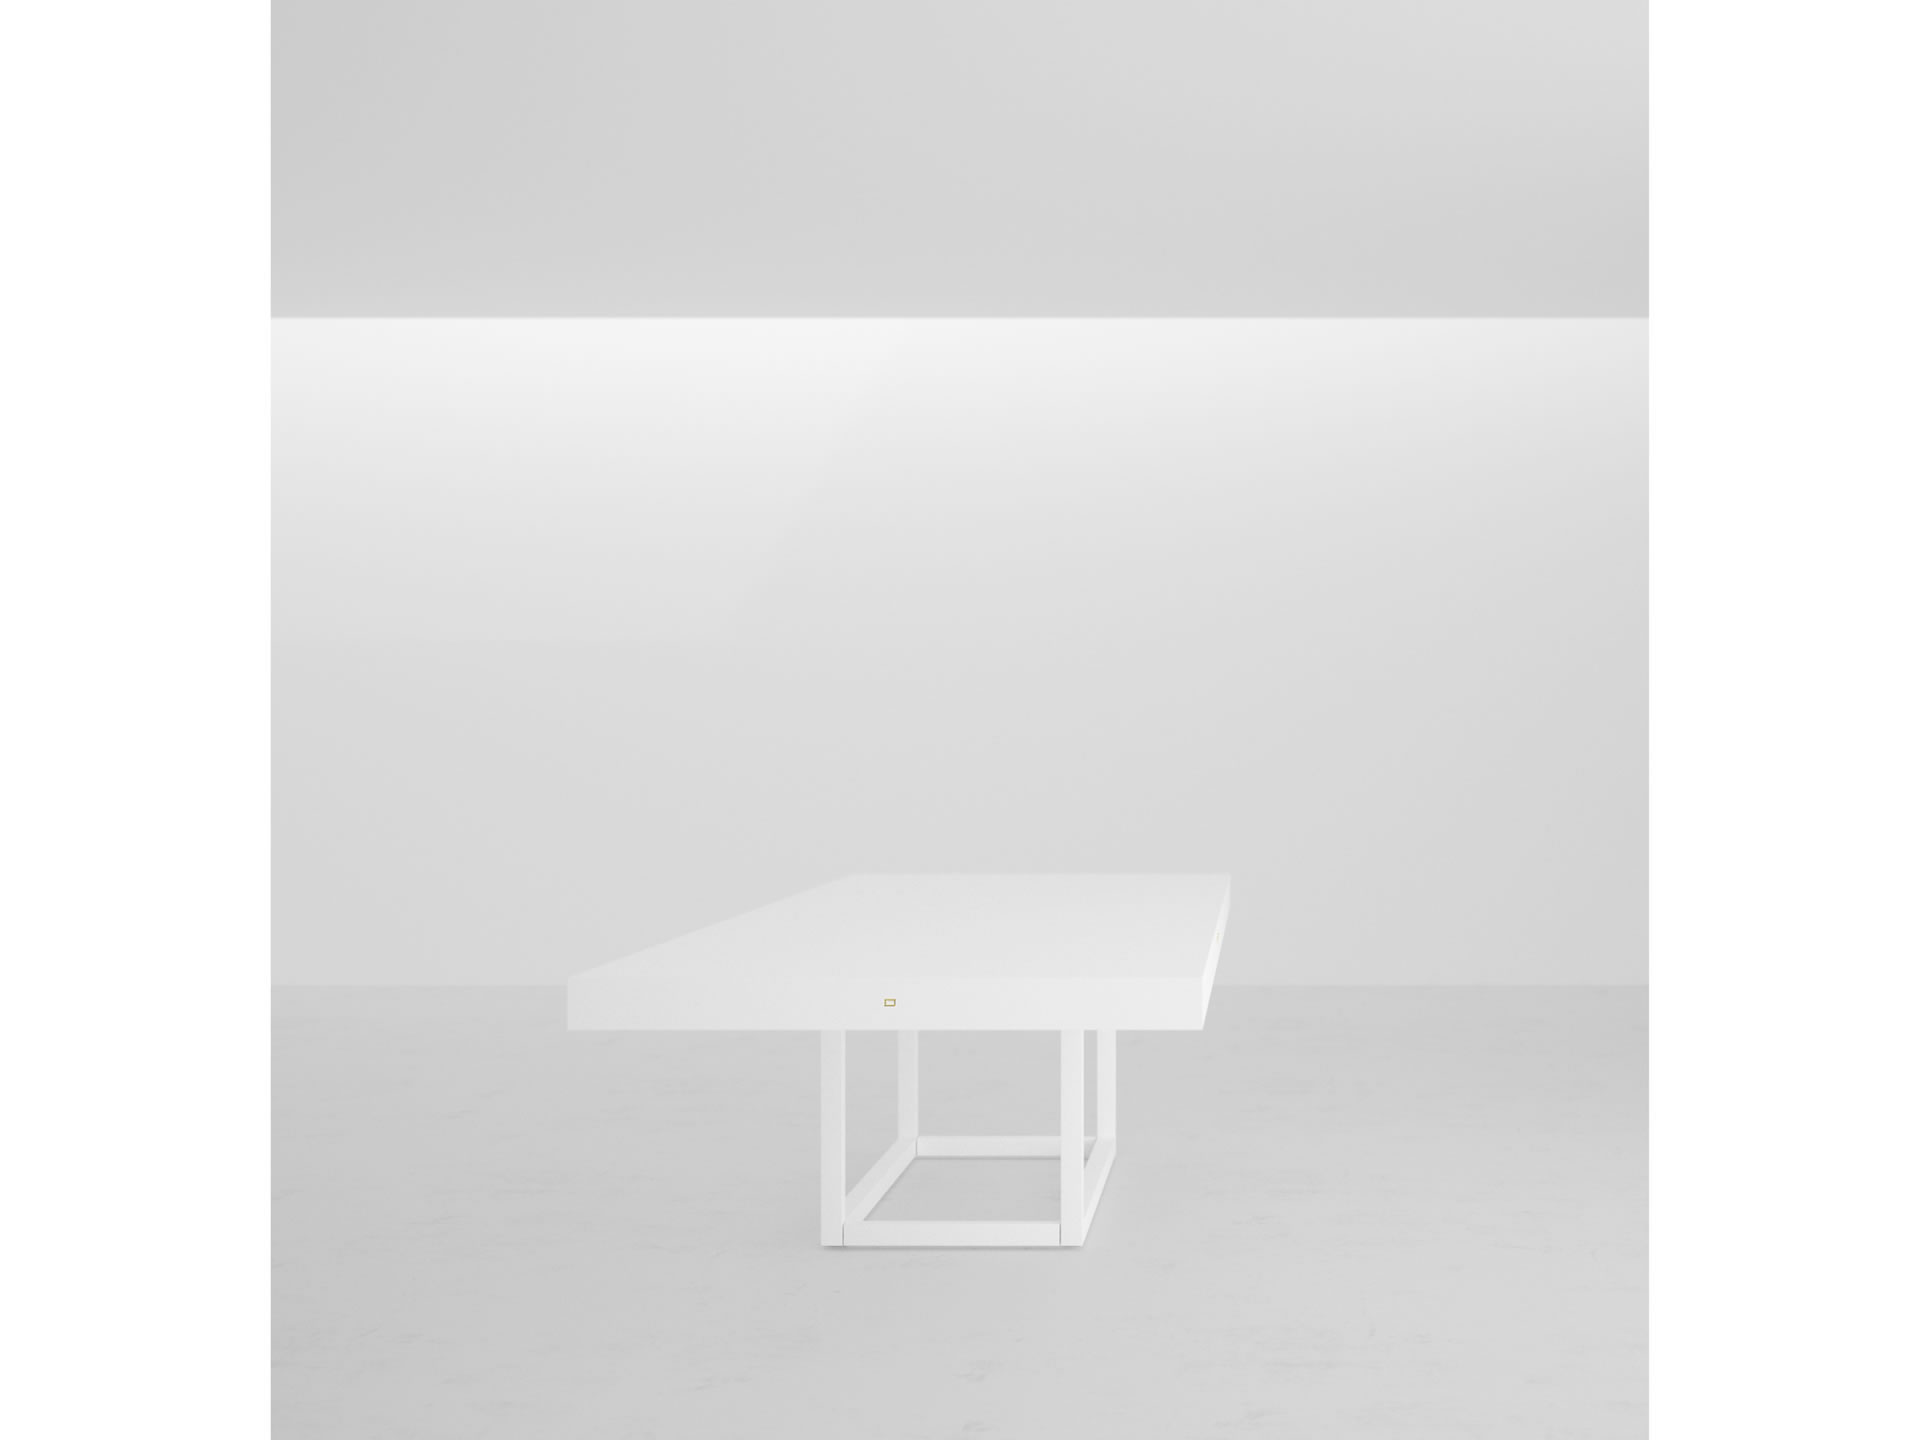 CONFERENCE TABLE ICONIC PIANO LACQUER WHITE FELIX SCHWAKE - Large white conference table